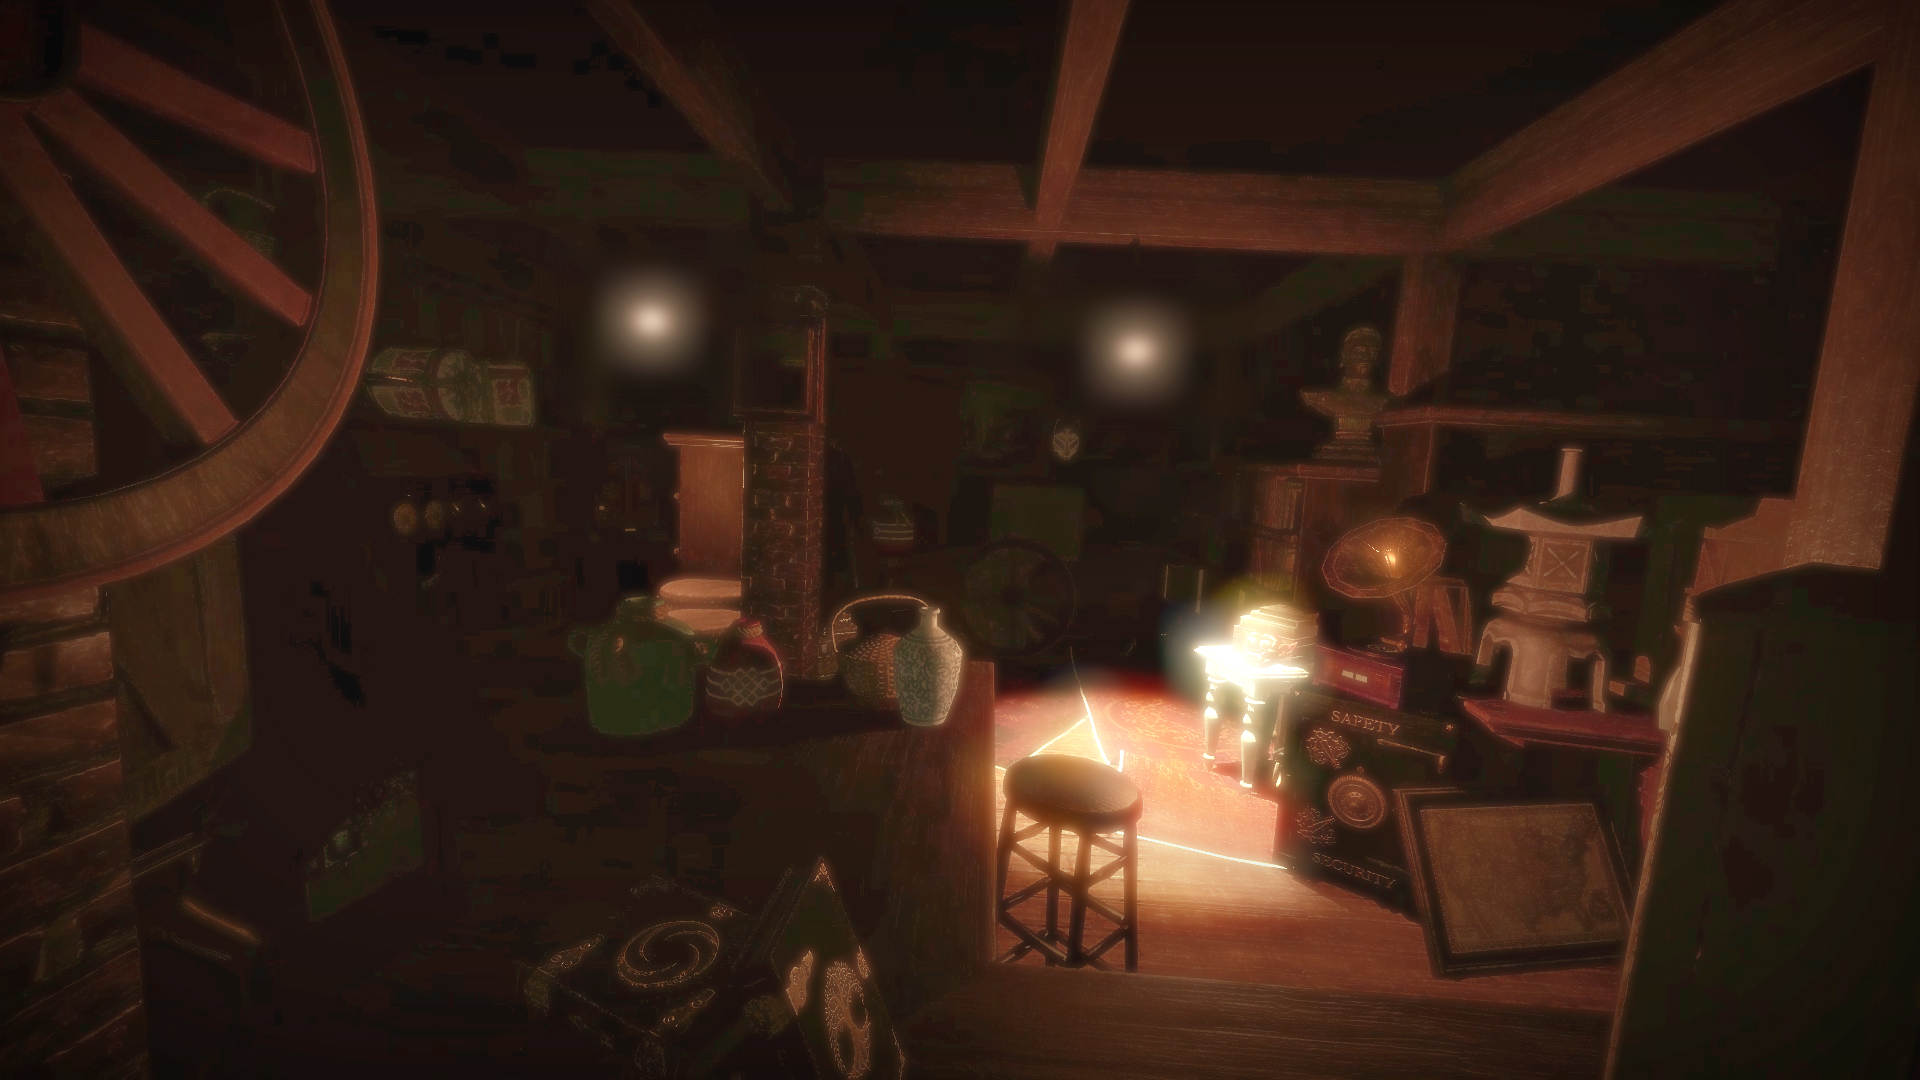 twilight-path-from-charm-games9-releases-on-steam-vr-and-the-oculus-store-frikigamers.com.jpg